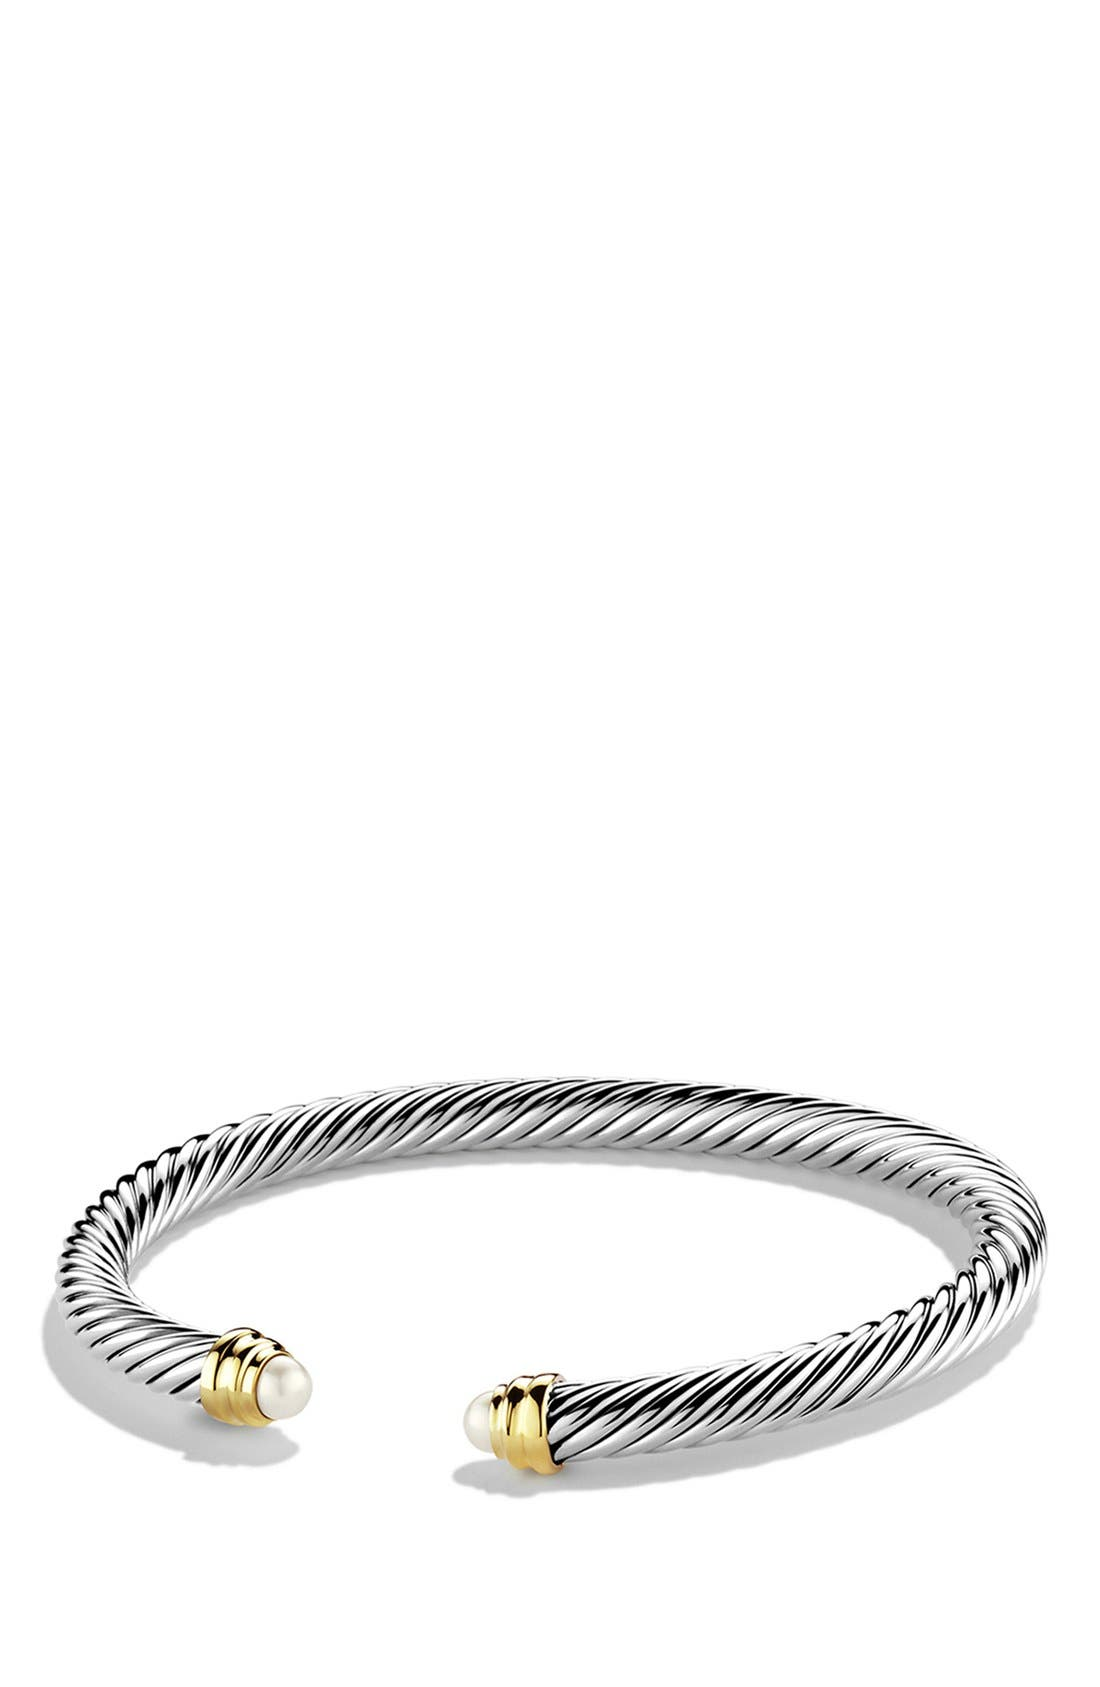 Cable Classics Bracelet with Semiprecious Stones & 14K Gold, 5mm,                             Main thumbnail 1, color,                             Pearl